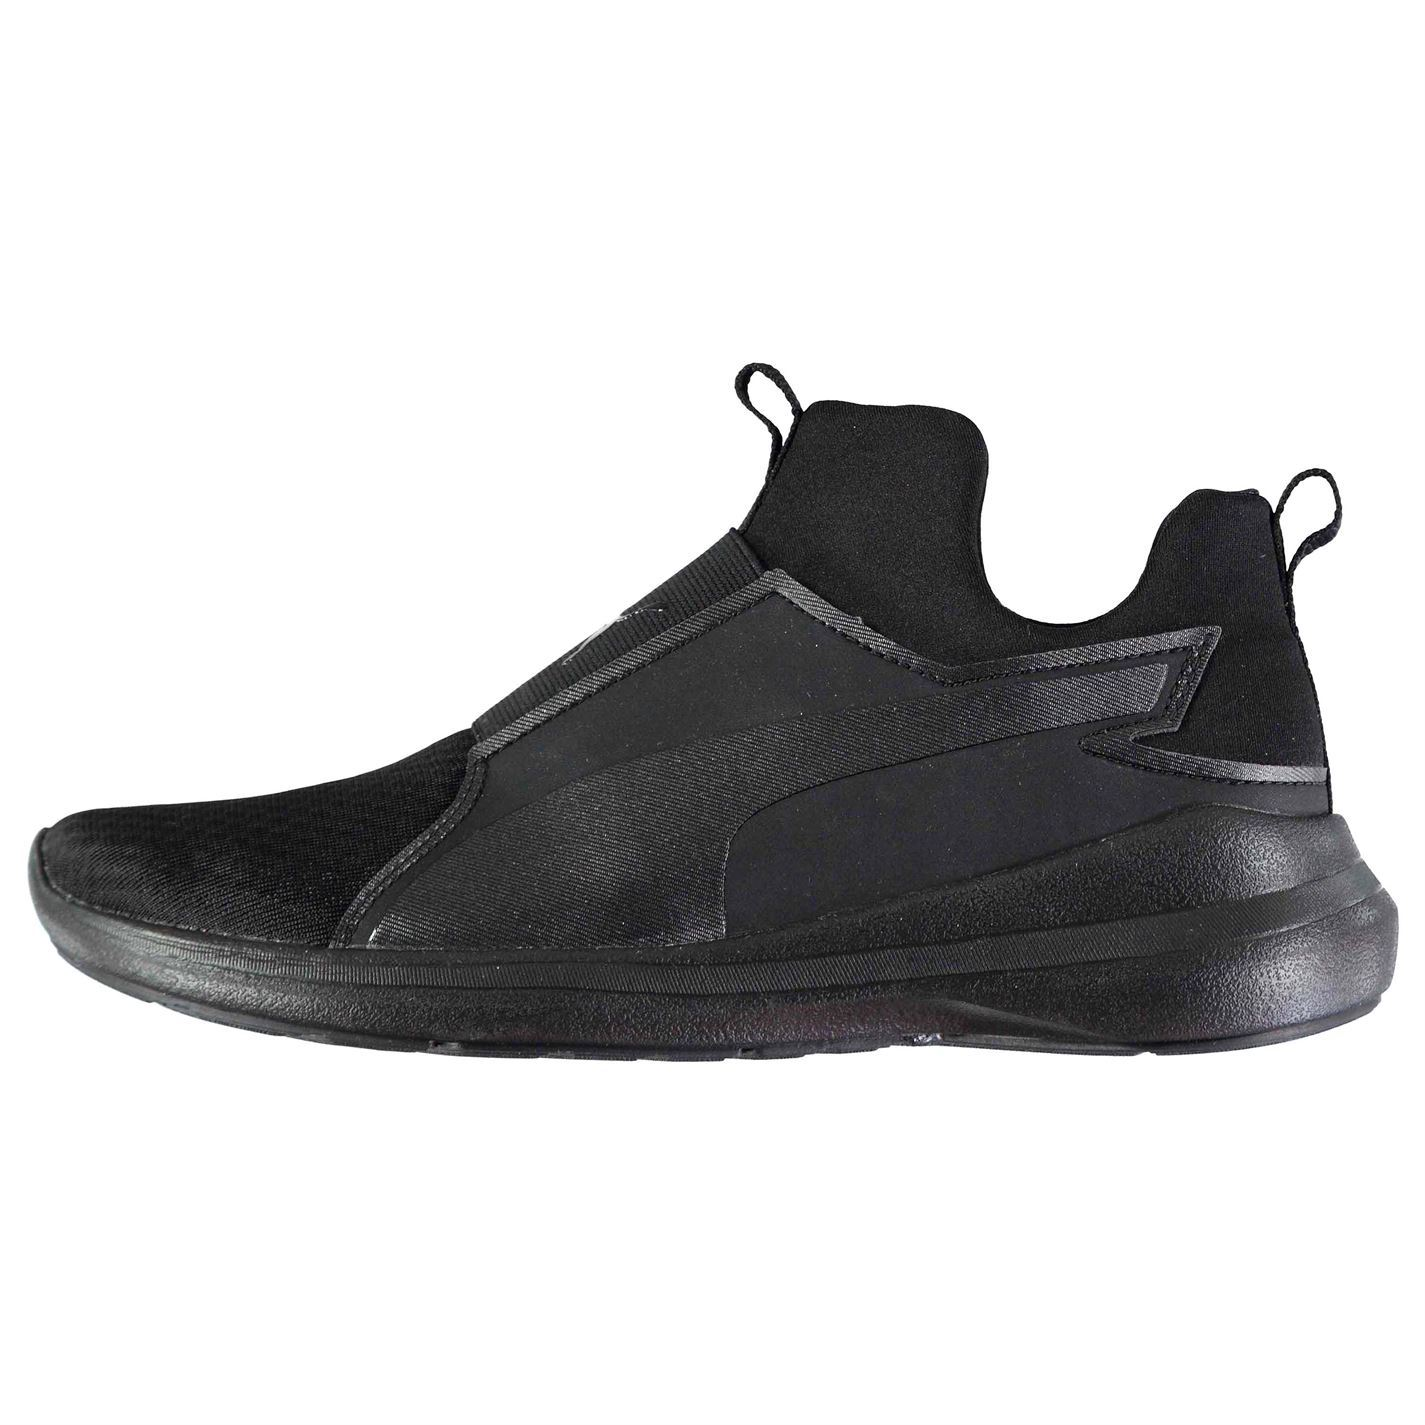 d3b93268ea6a40 ... Puma Rebel Mid Fitness Training Shoes Womens Black Gym Workout Trainers  Sneakers ...